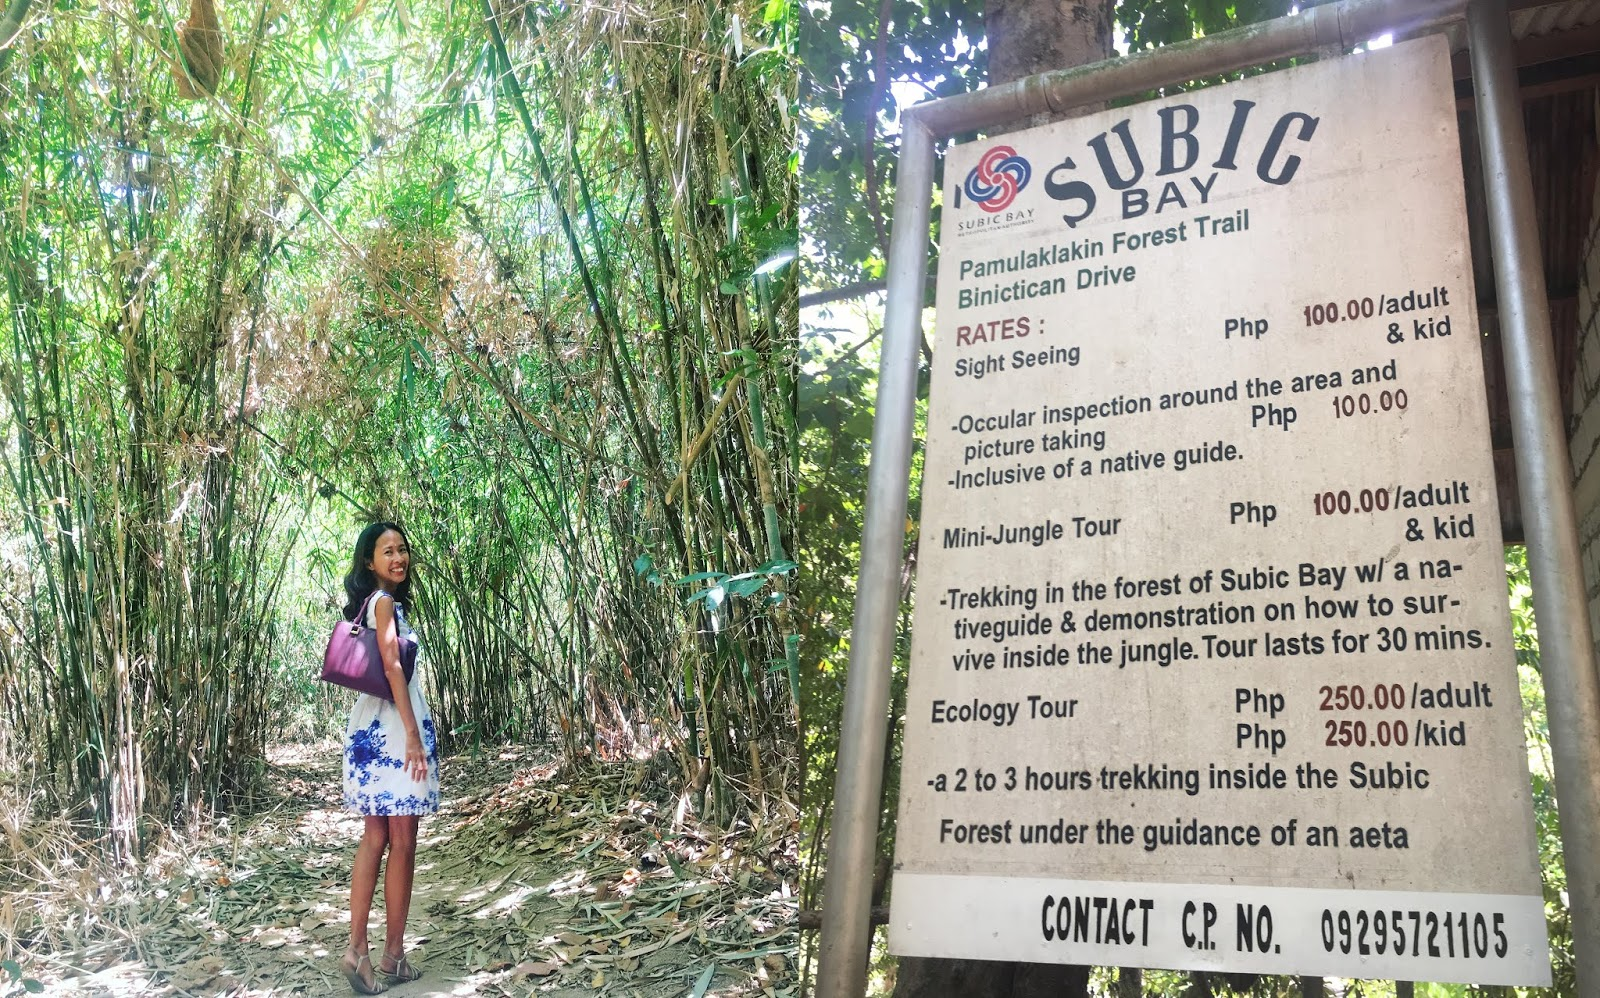 PAMULAKLAKIN FOREST TRAIL SUBIC BAY